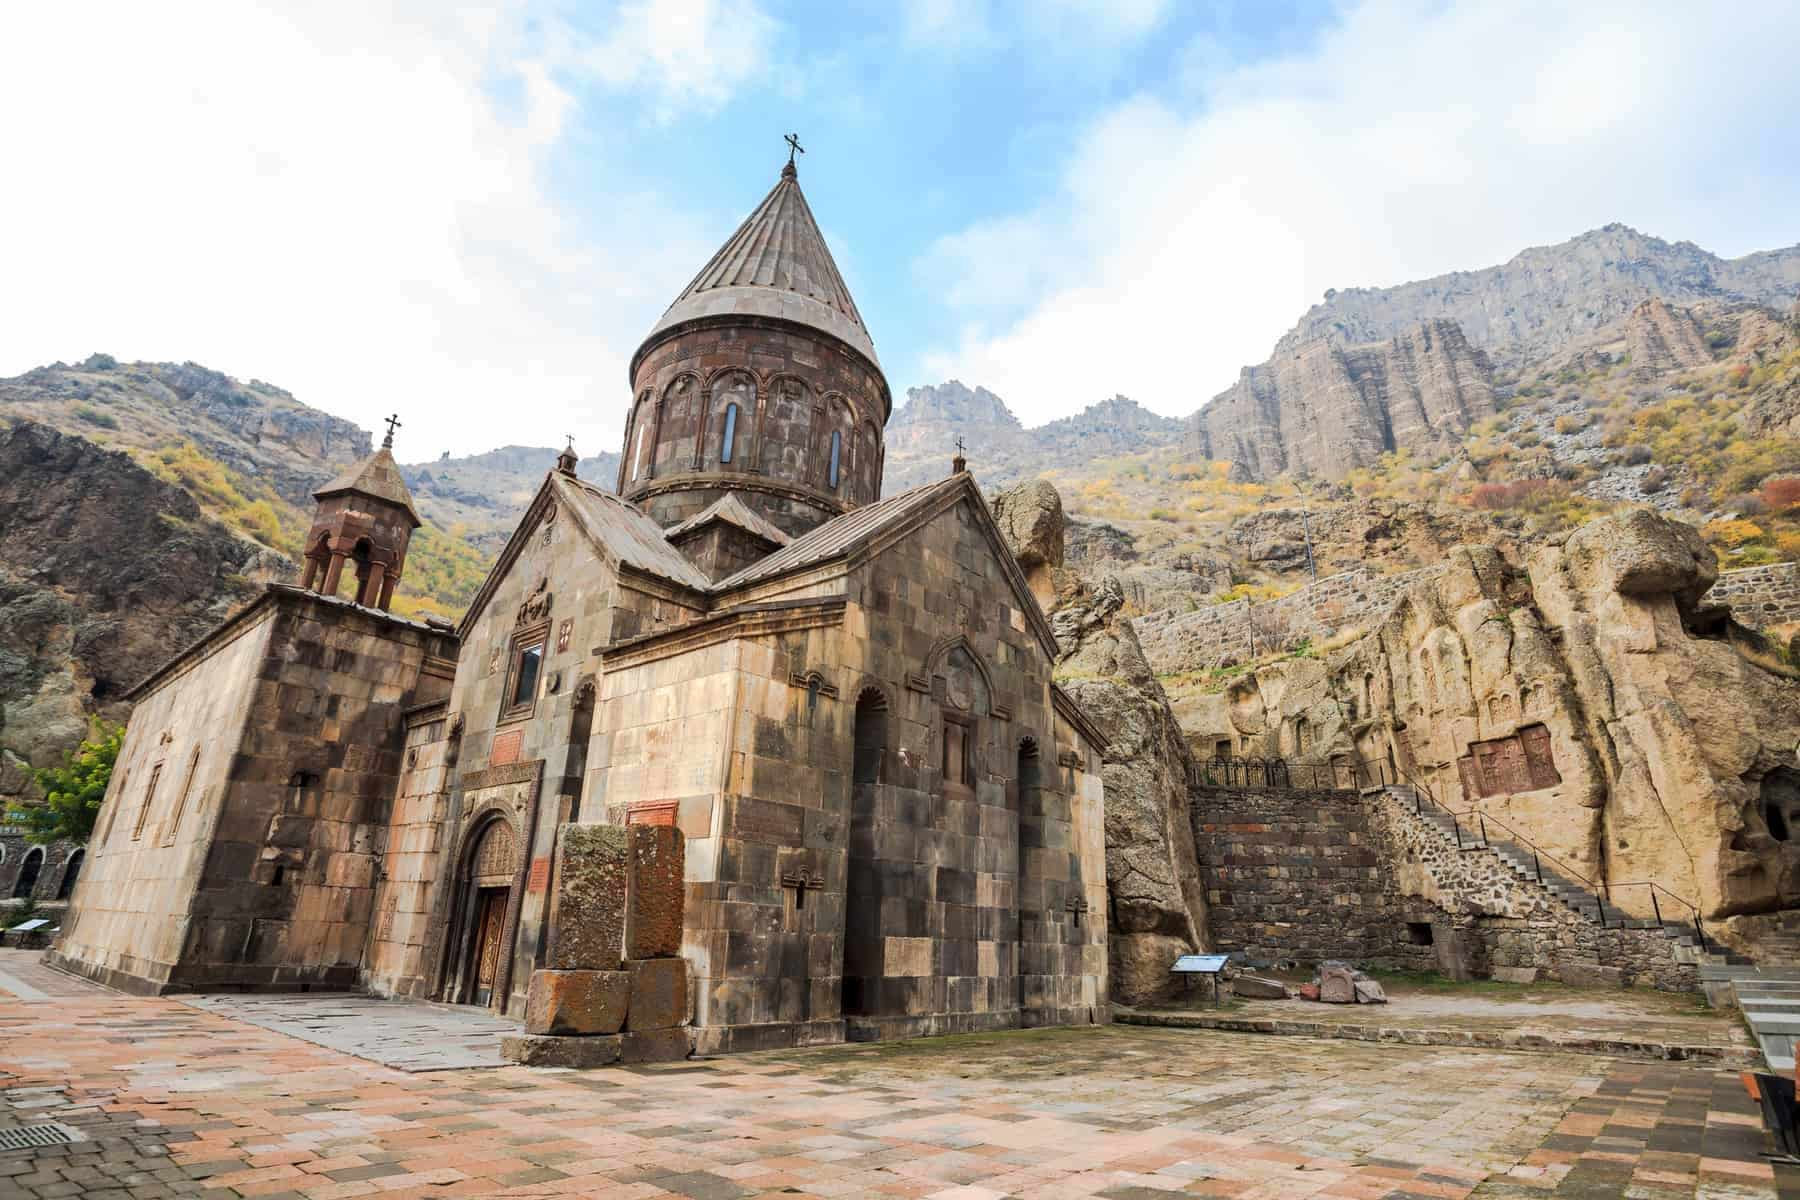 Monastery of Geghard is an Orthodox Christian monastery located in Kotayk Province of Armenia